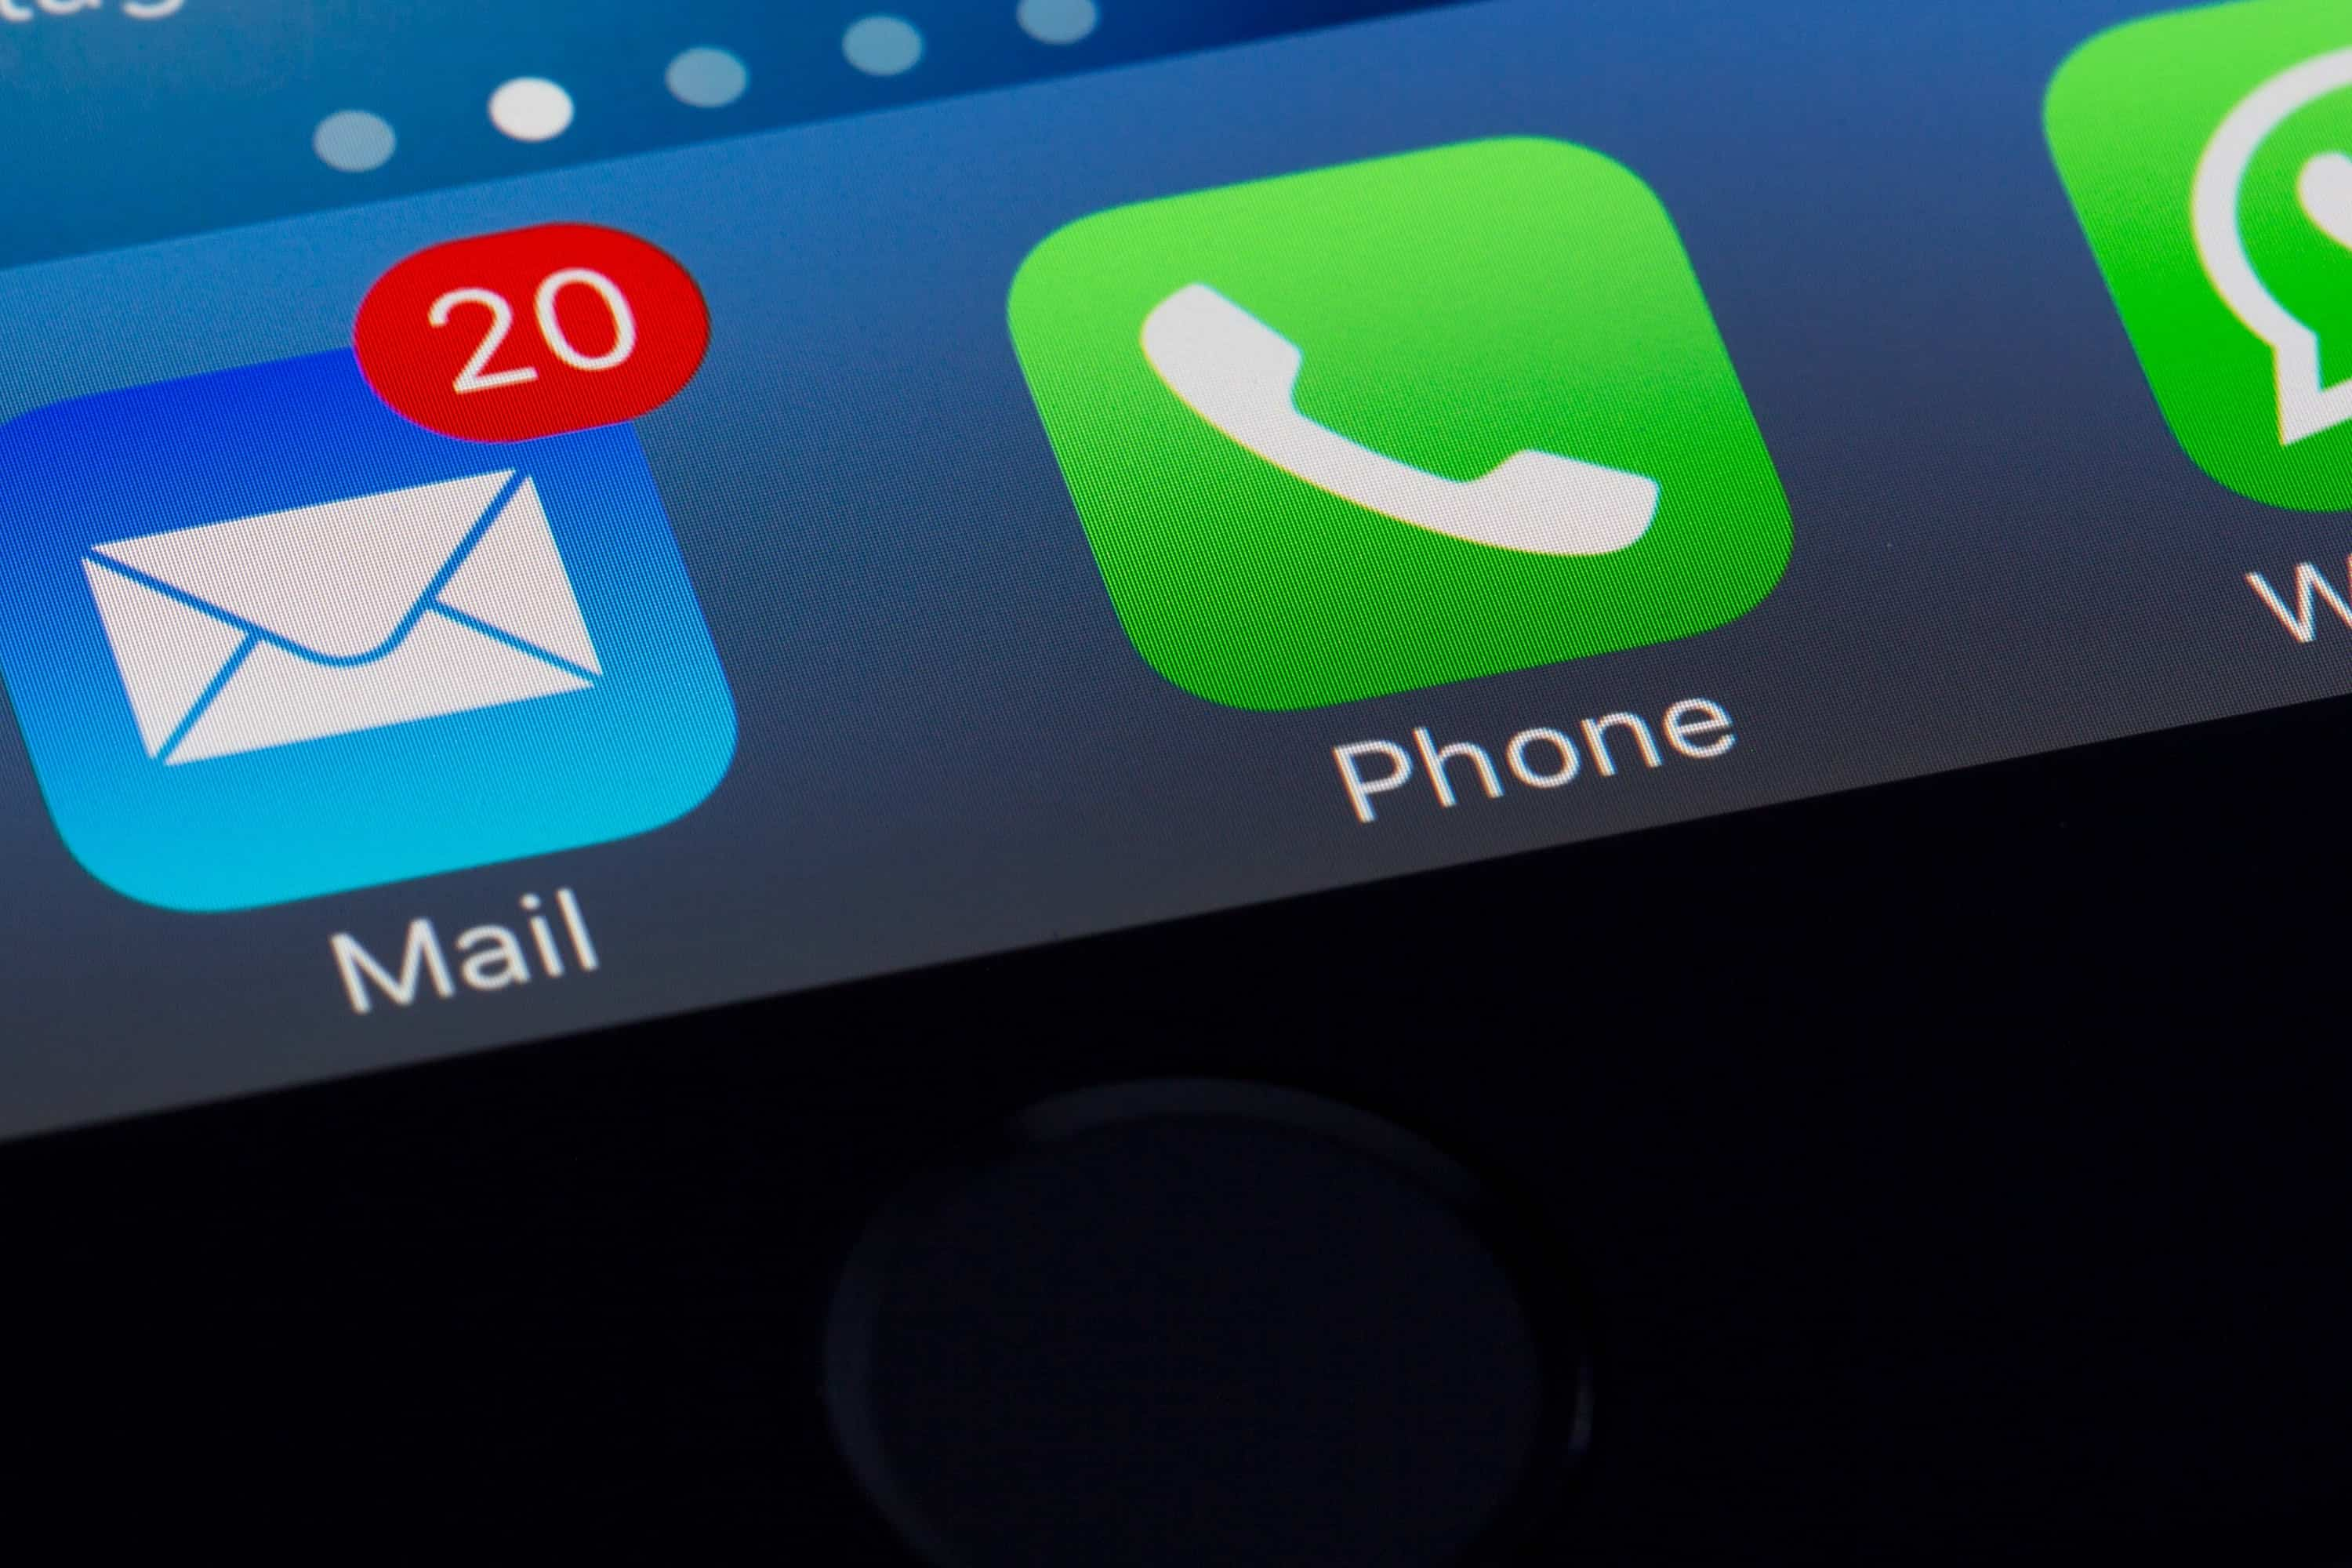 ftc-warns-against-scam-calls-pretending-to-be-apple-20201204-1